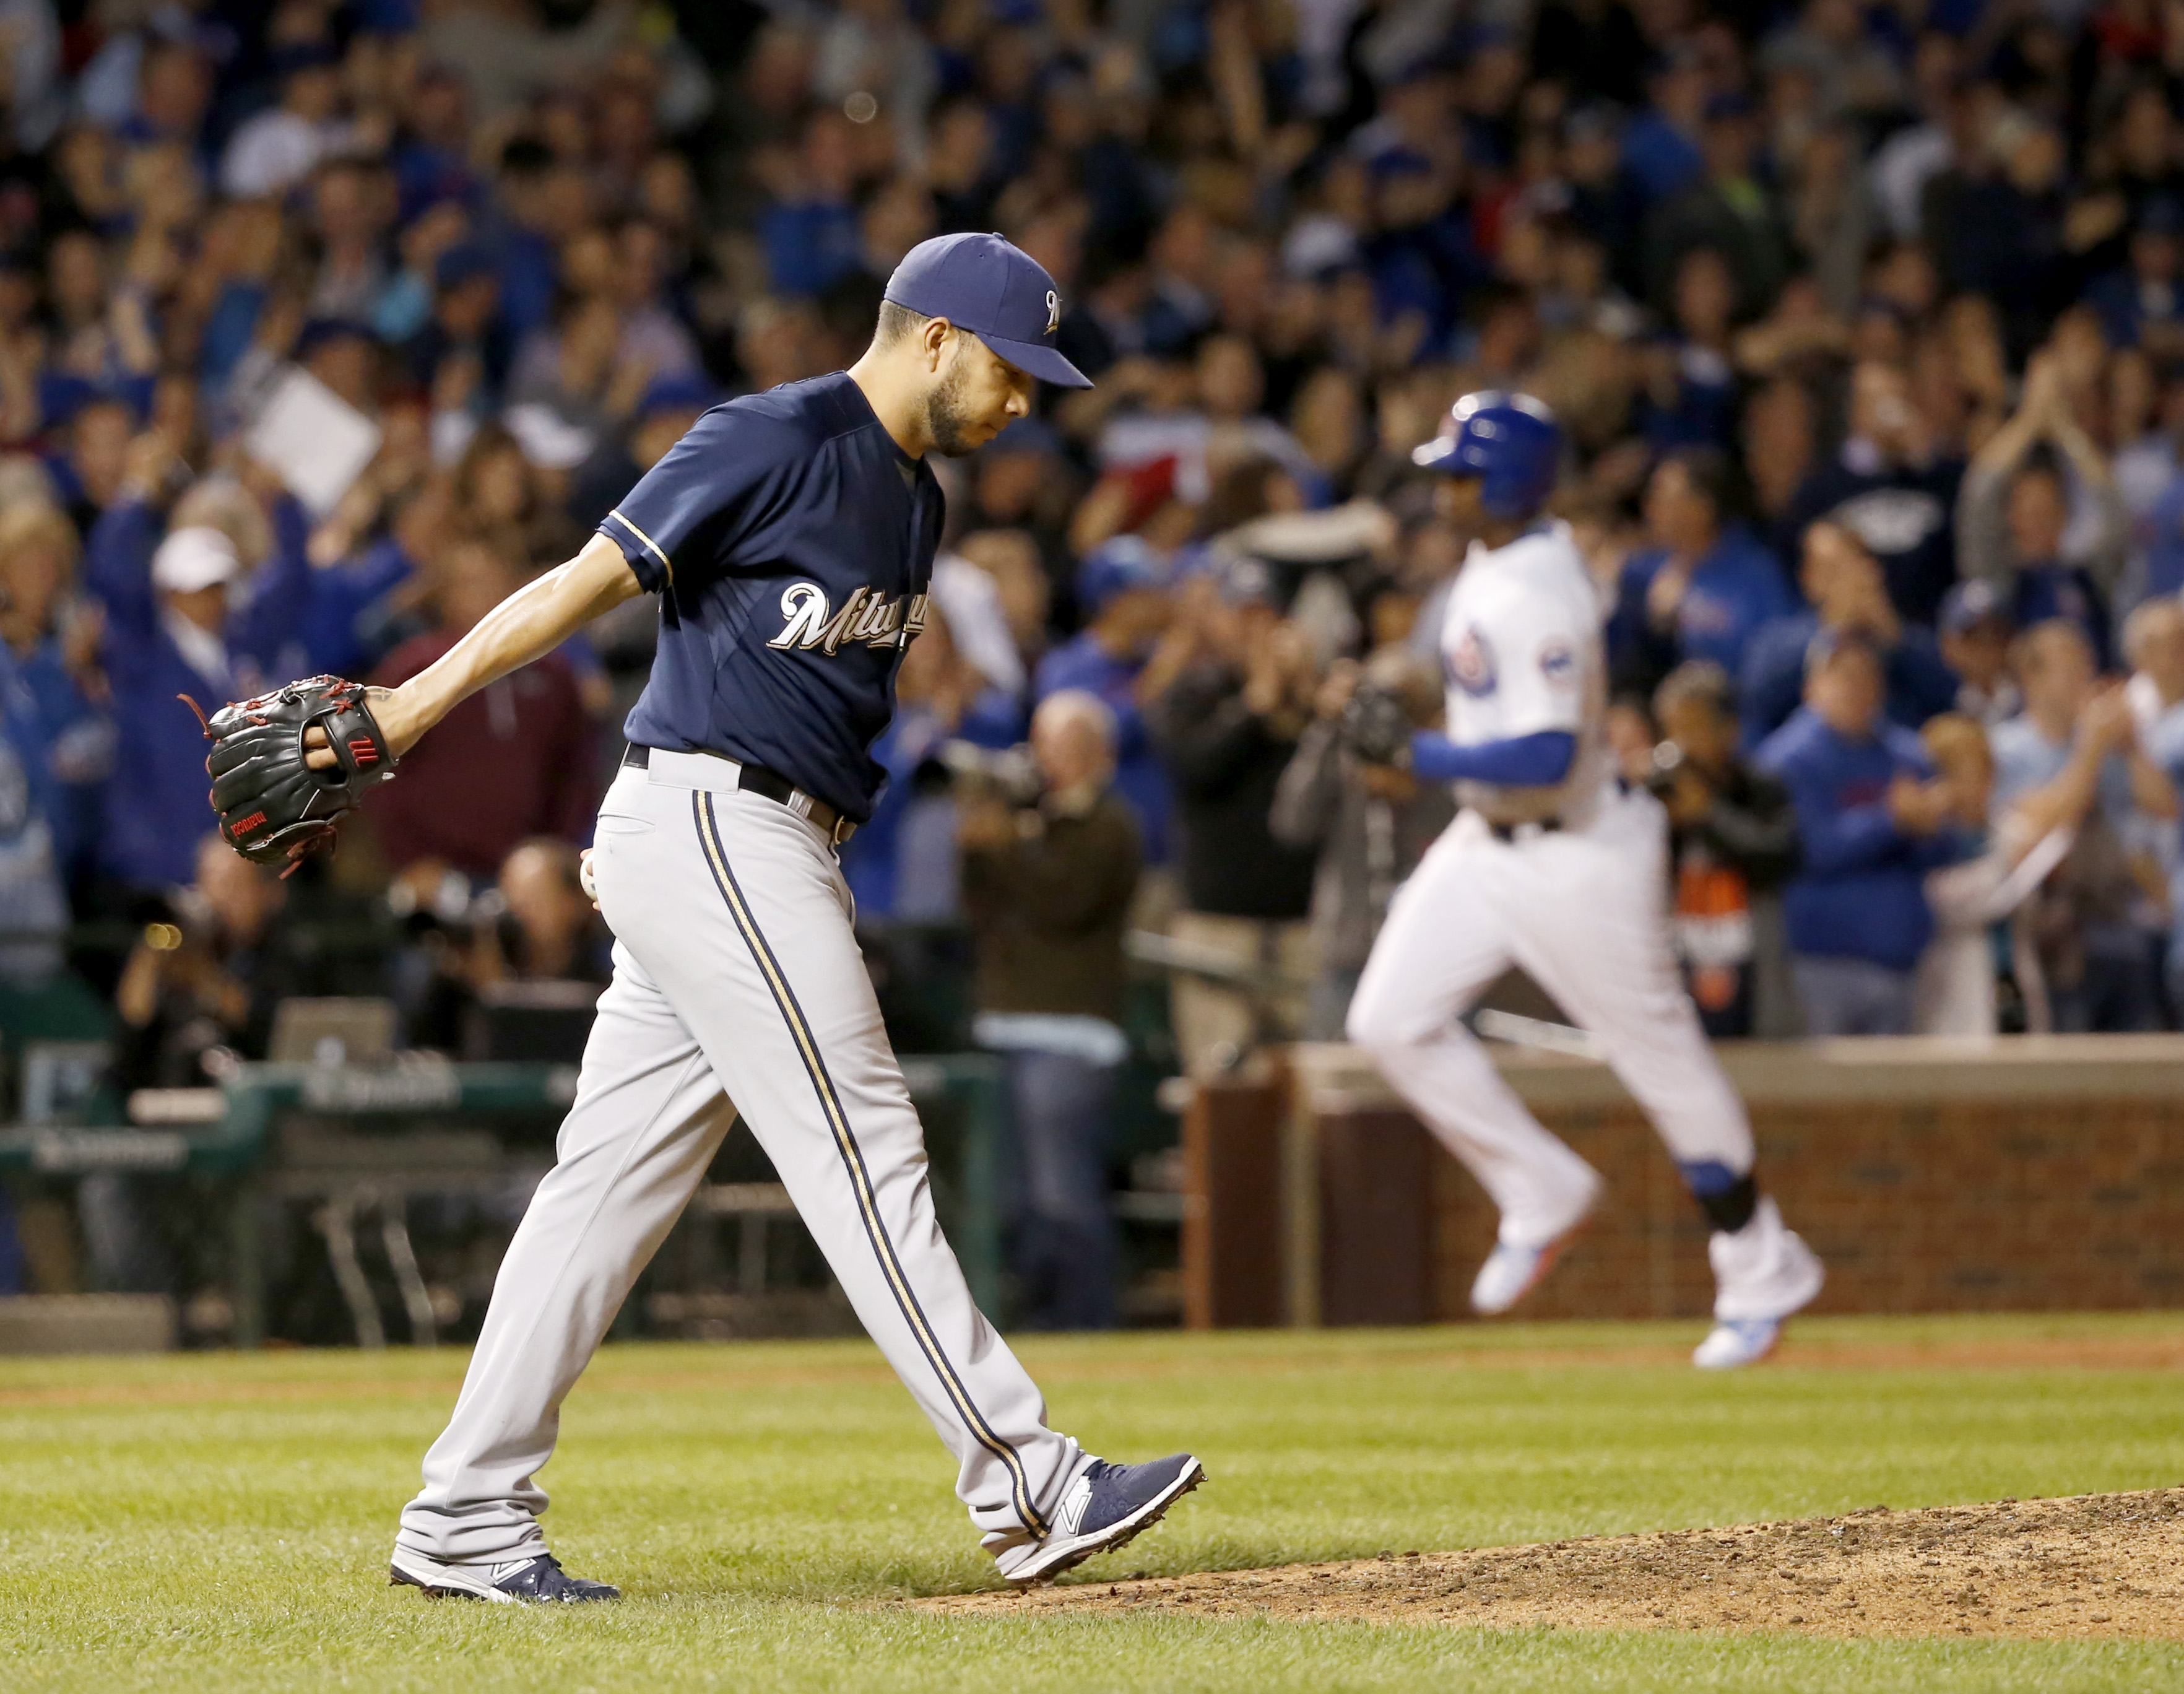 Milwaukee Brewers relief pitcher Cesar Jimenez returns to the mound after giving up a pinch hit, three-run home run to Chicago Cubs' Jorge Soler, right, also scoring Anthony Rizzo and Starlin Castro, during the seventh inning of a baseball game Monday, Se